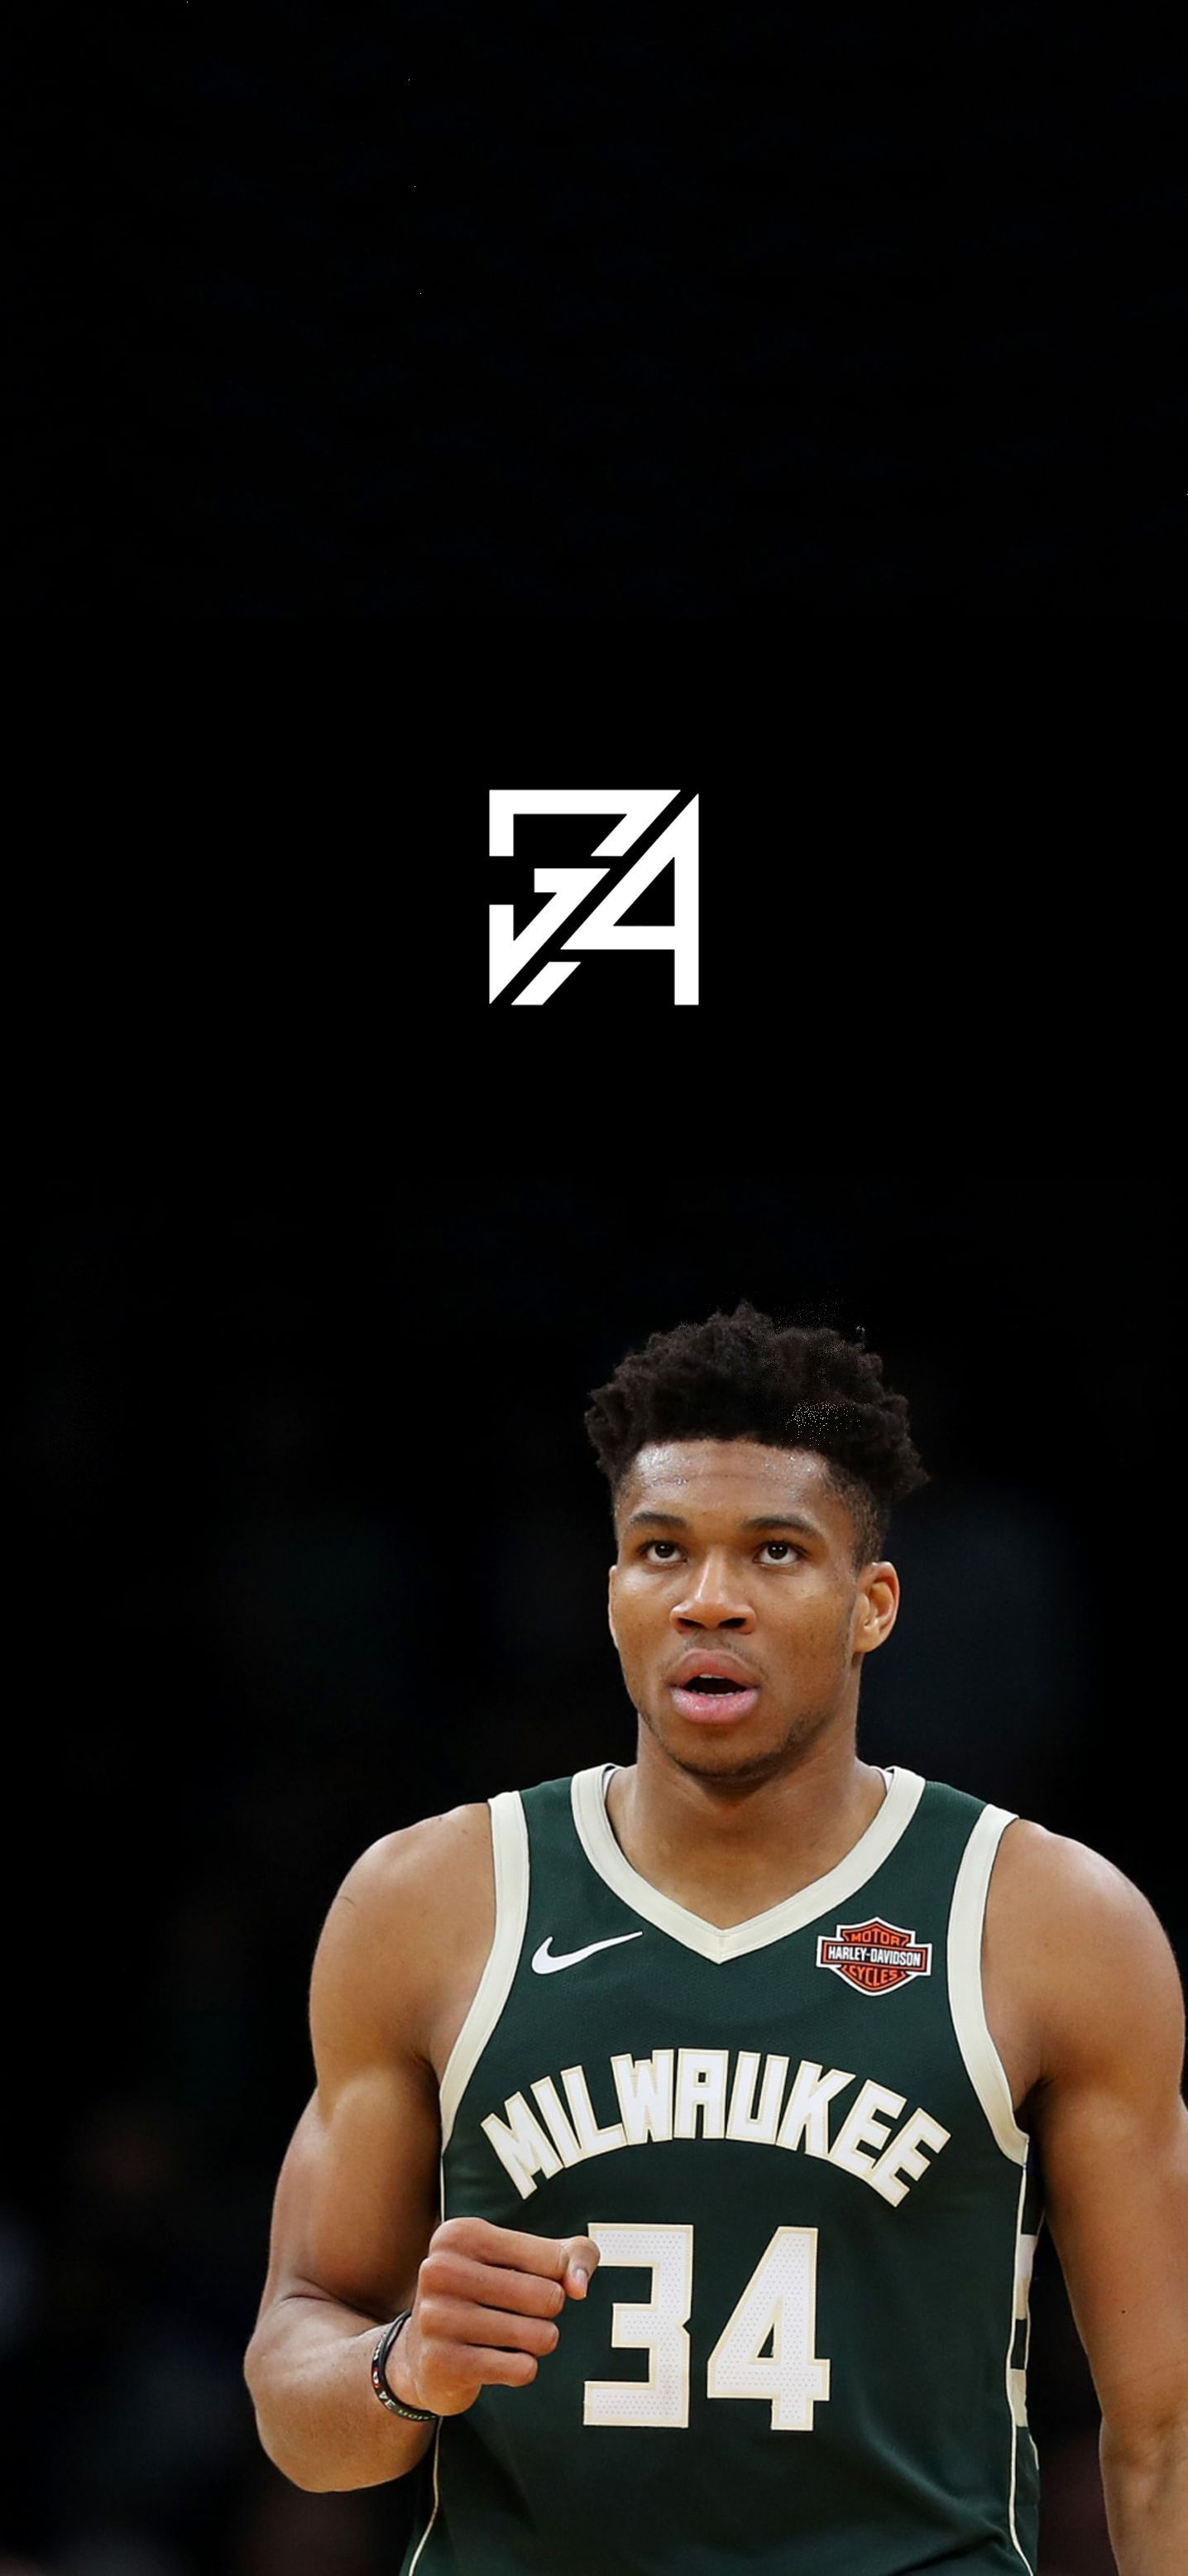 Giannis Wallpapers - Wallpaper Cave